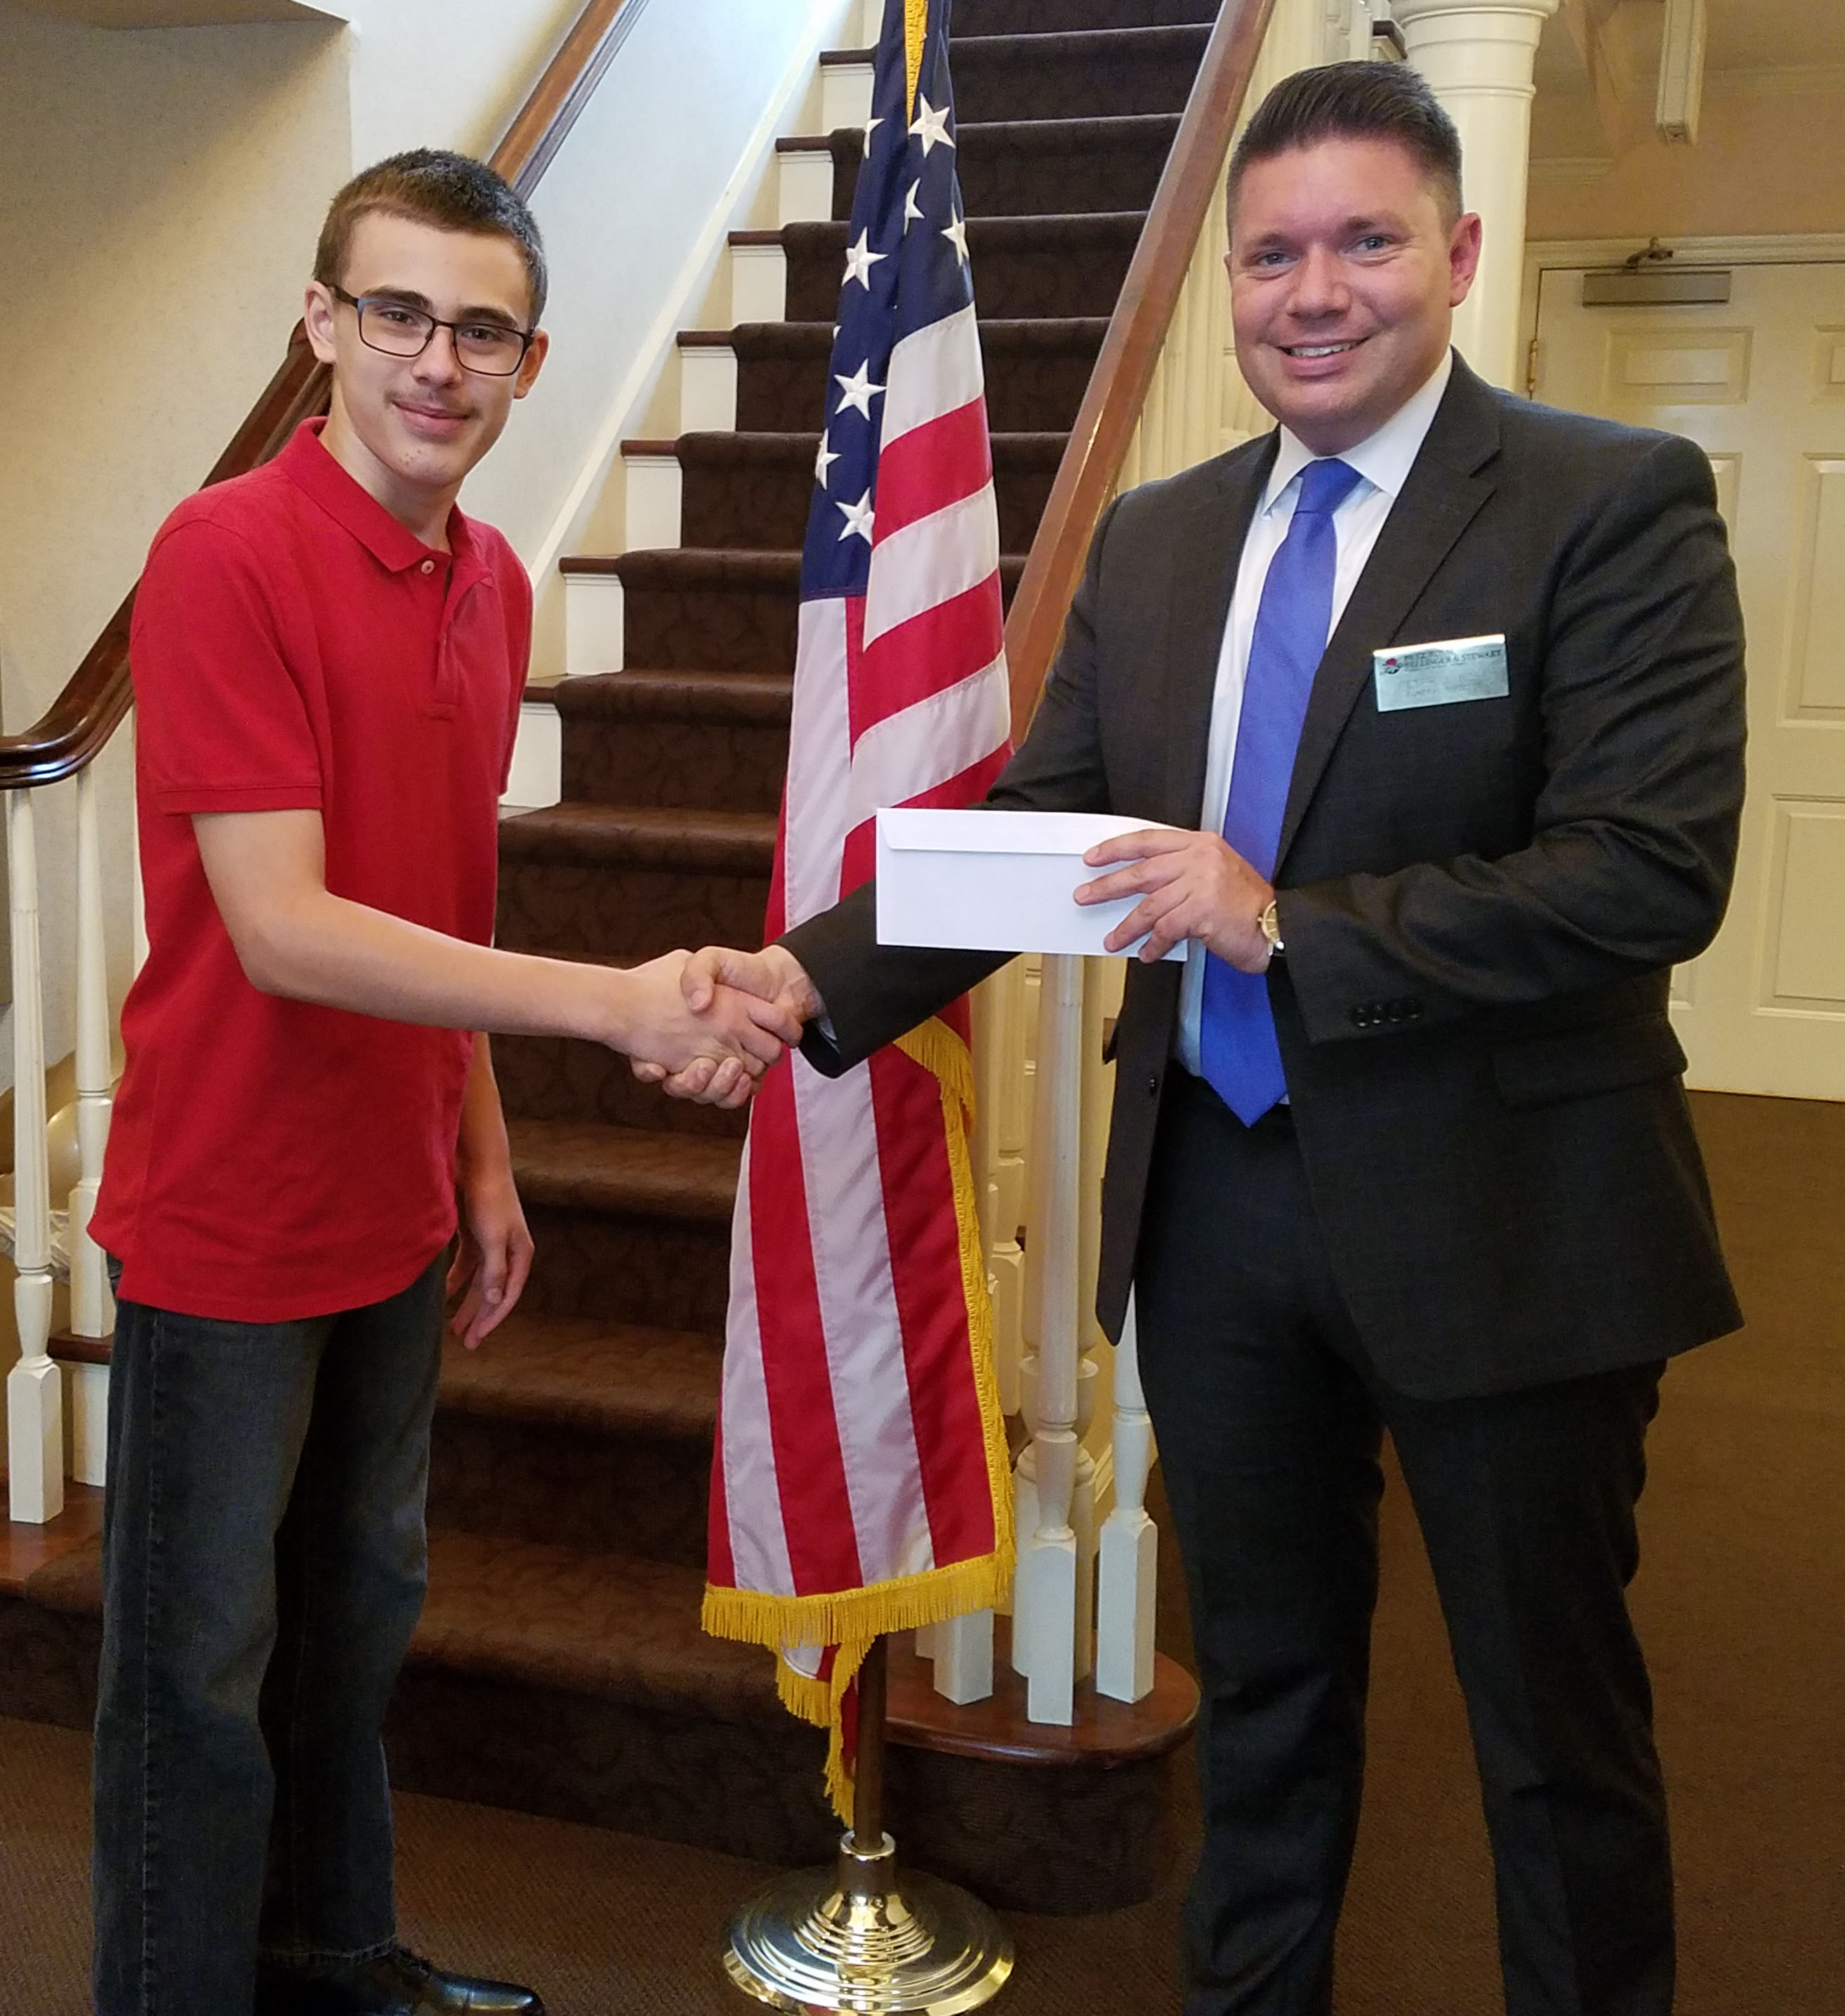 Garrick shakes hands with a funeral home representative who hands him an envelope